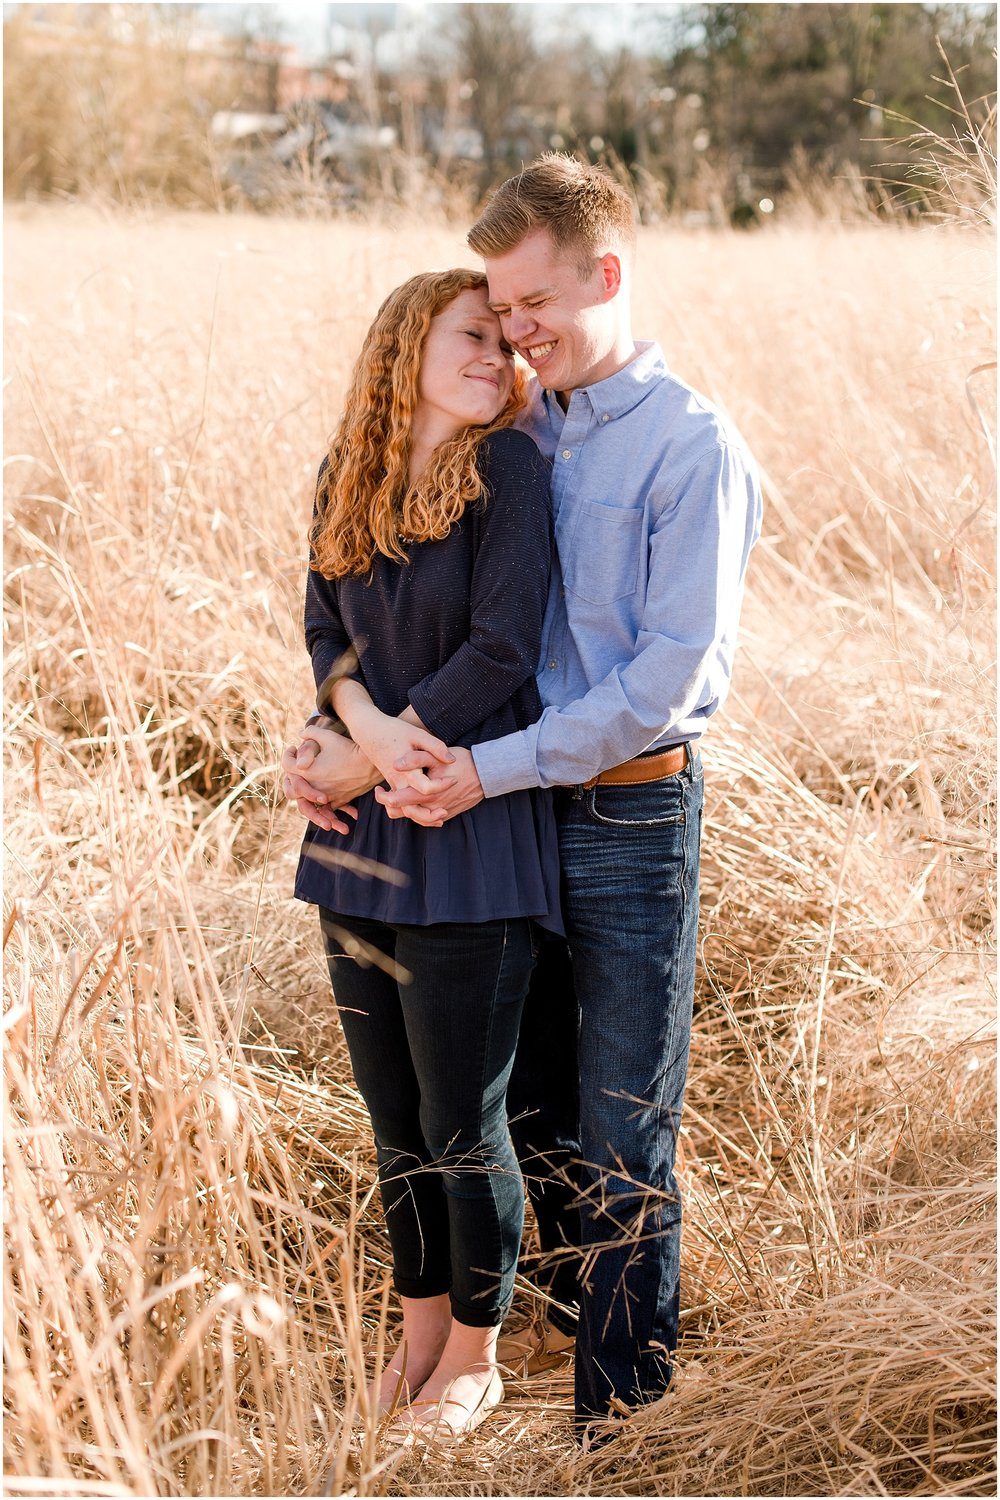 Hannah Leigh Photography State College, PA Engagement Session_3315.jpg